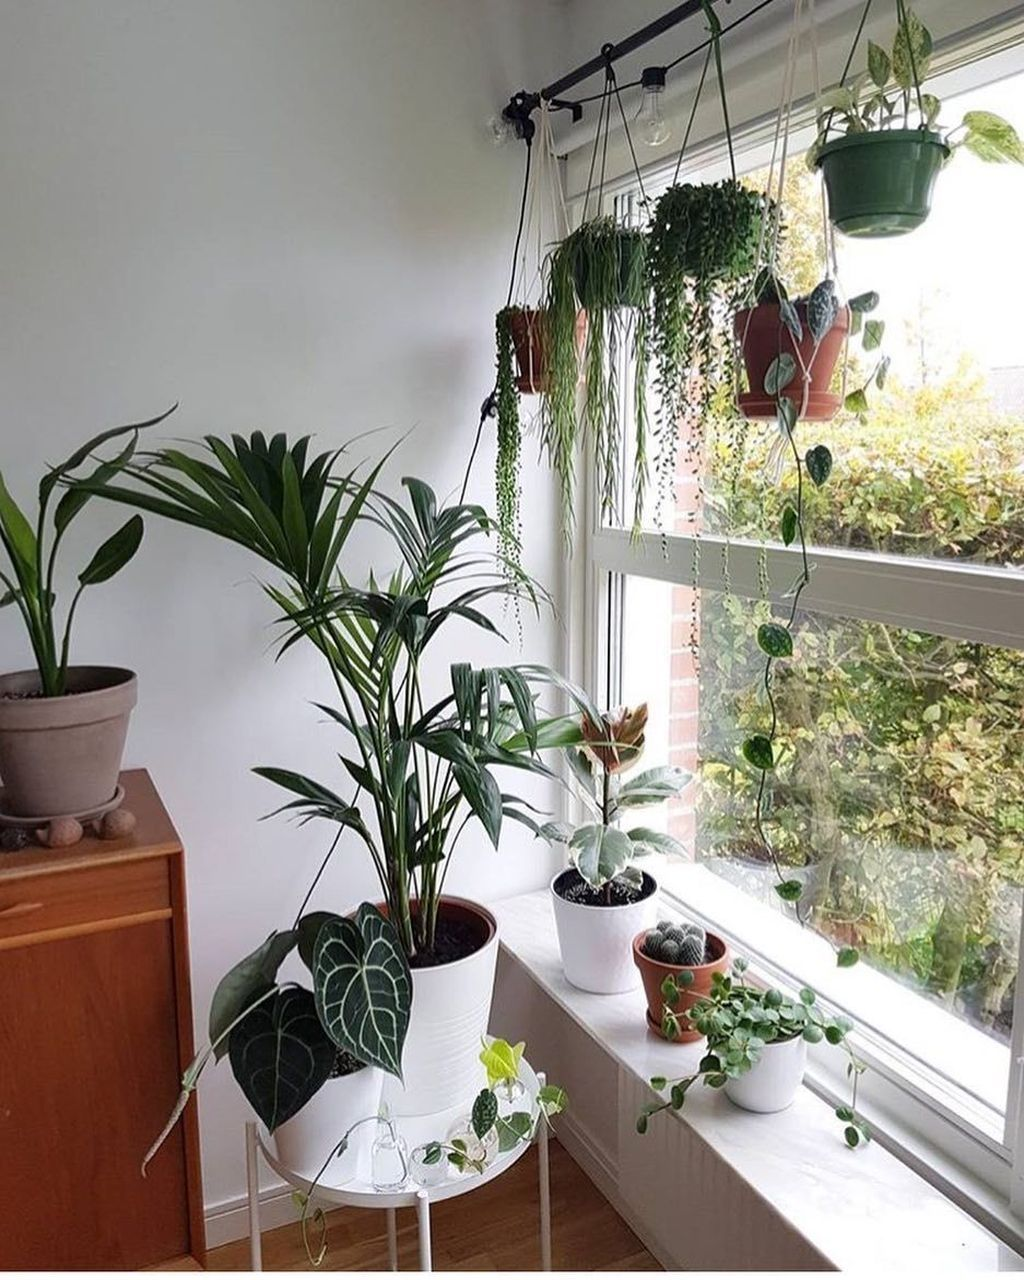 15+ Lovely Window Design Ideas With Plants That Make Your Home